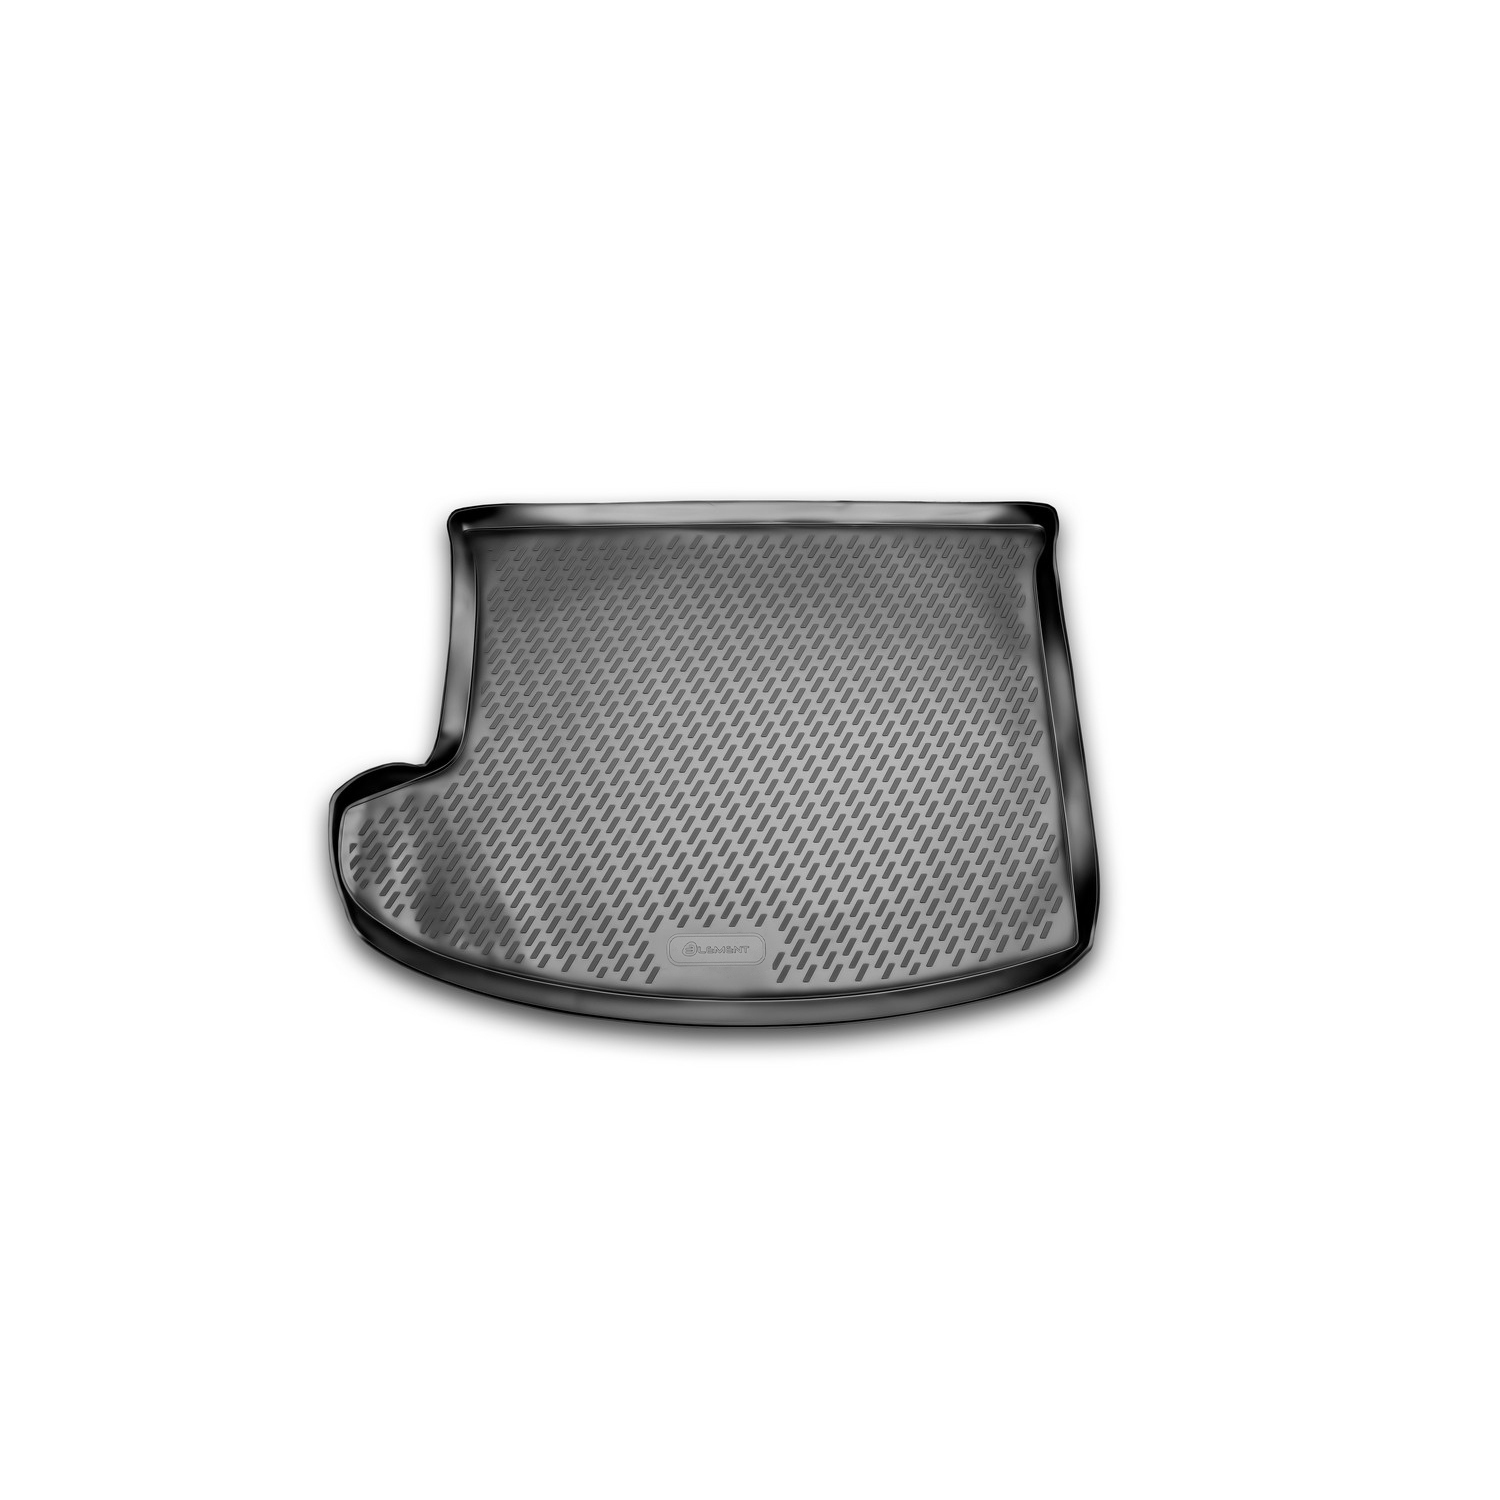 Trunk Mat For JEEP Compass New 2011-2016 Cross. CARJEP00004